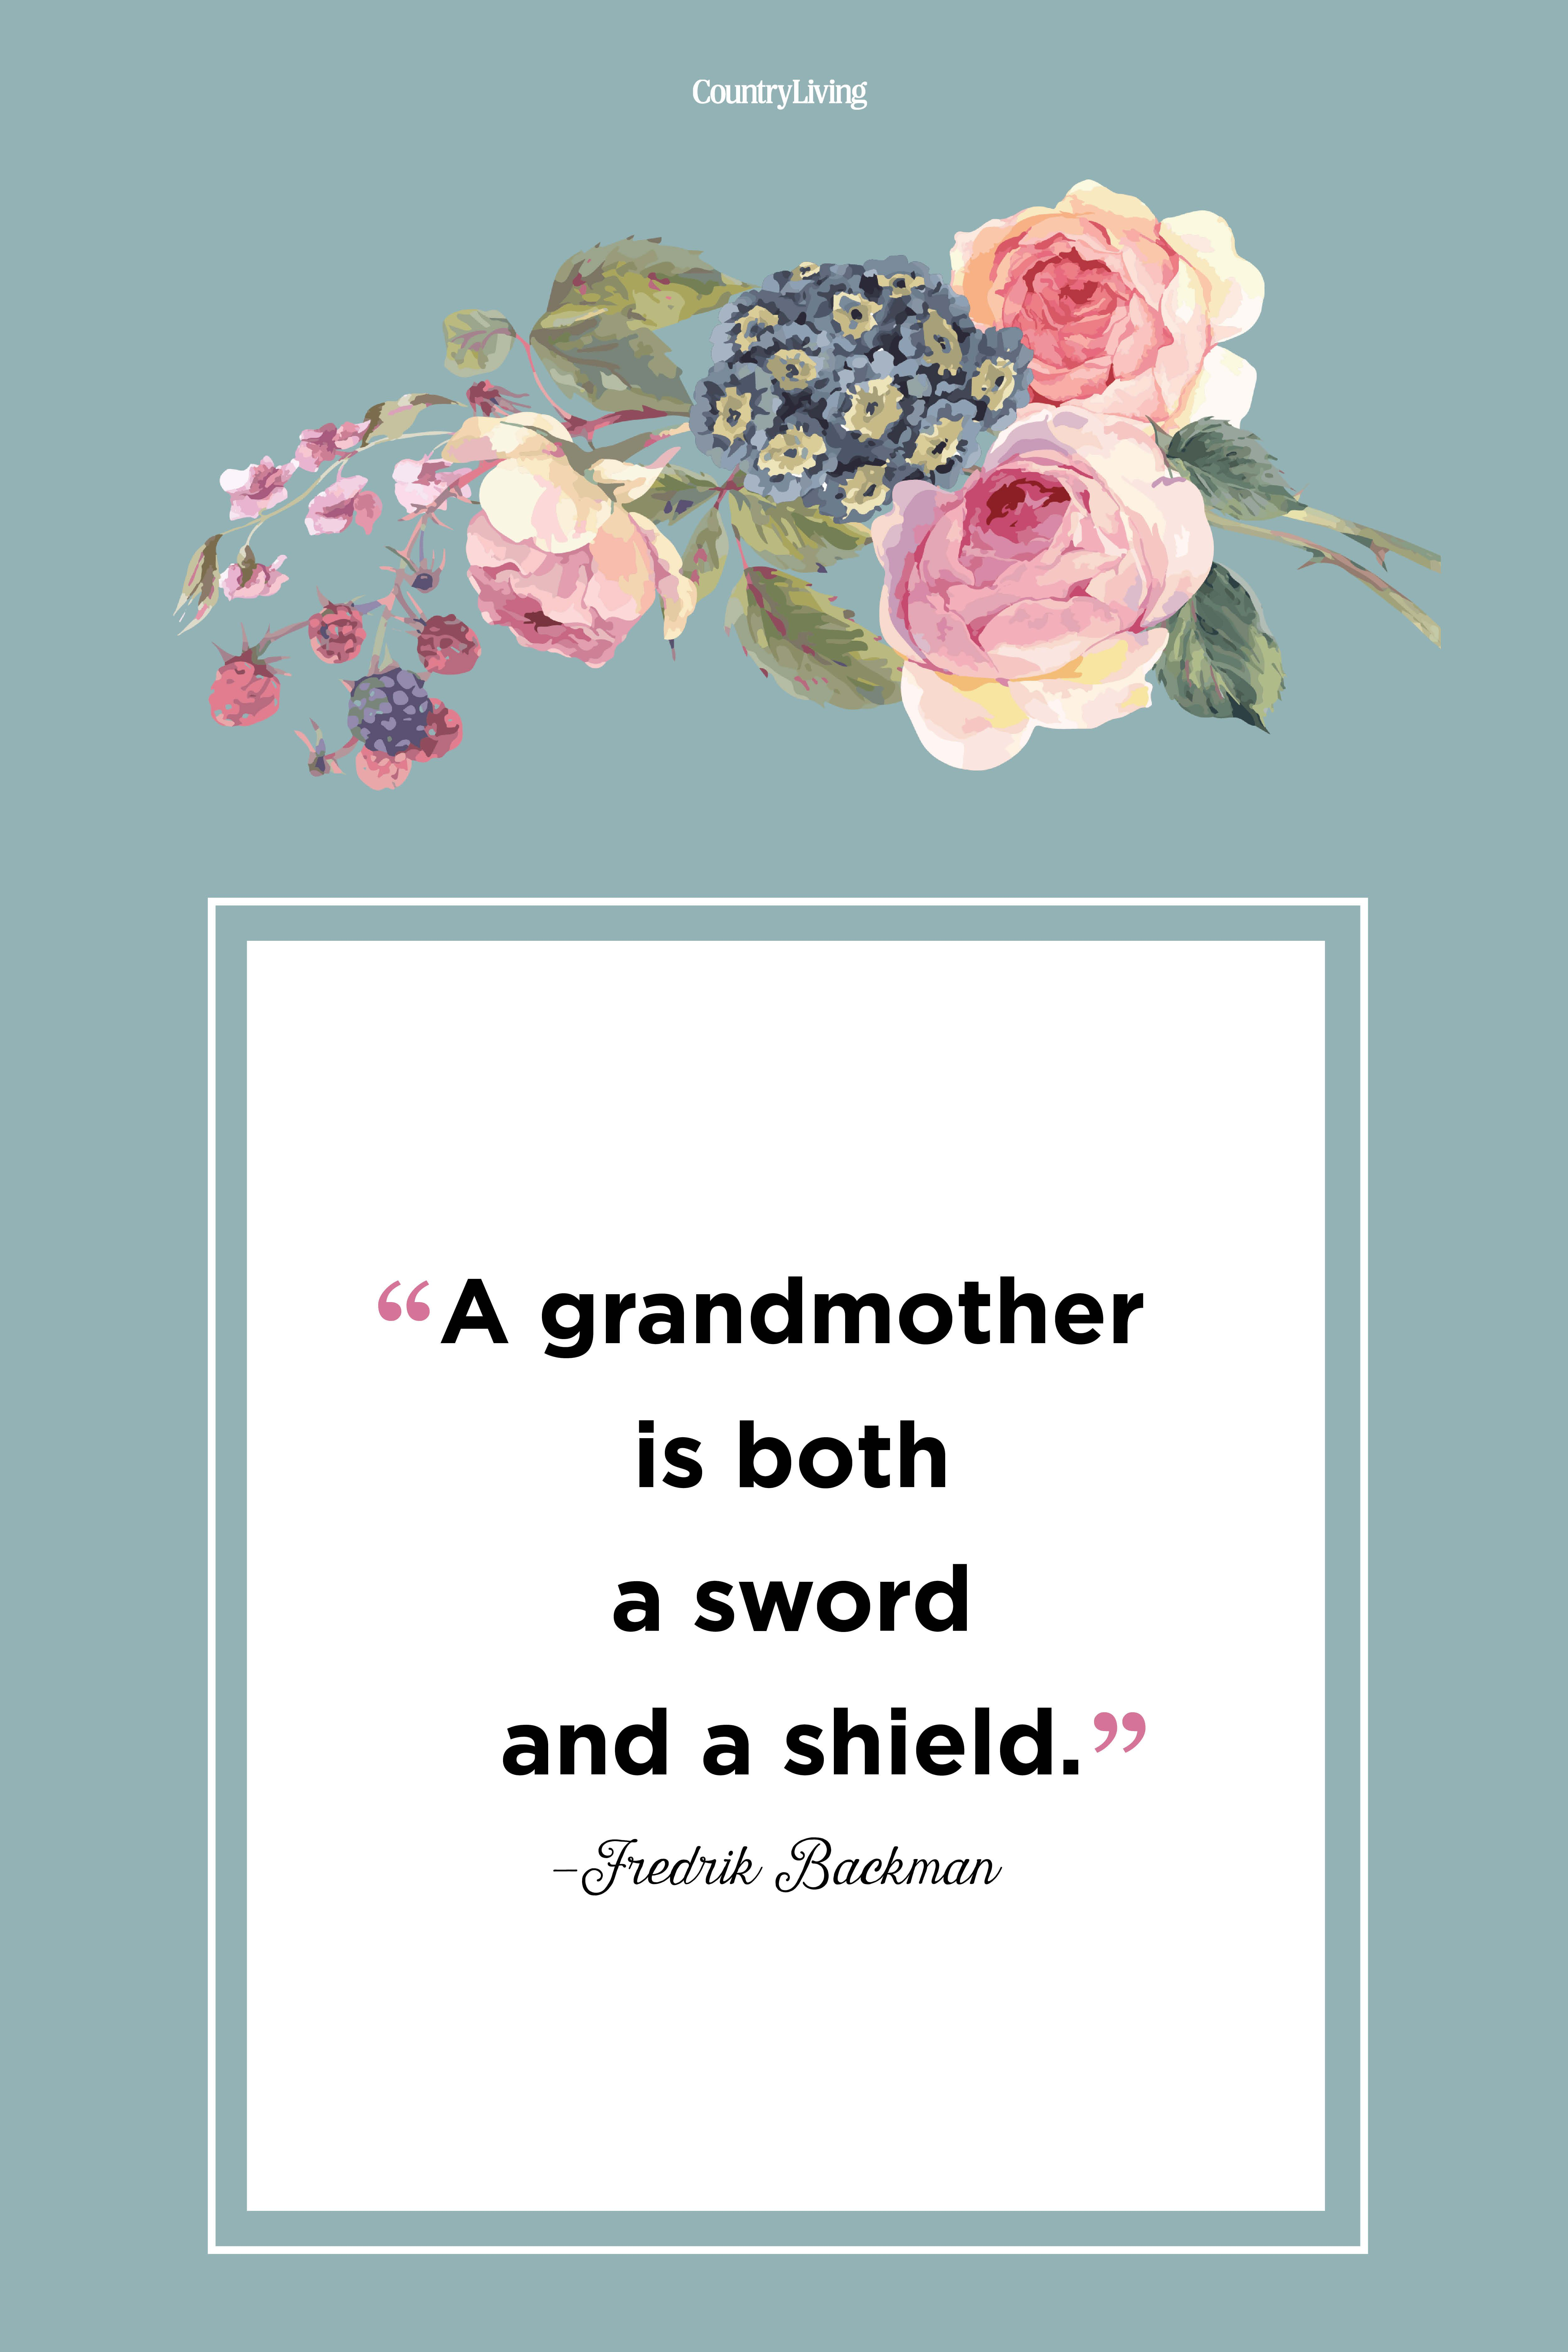 8 Grandma Love Quotes - Best Grandmother Quotes and Sayings